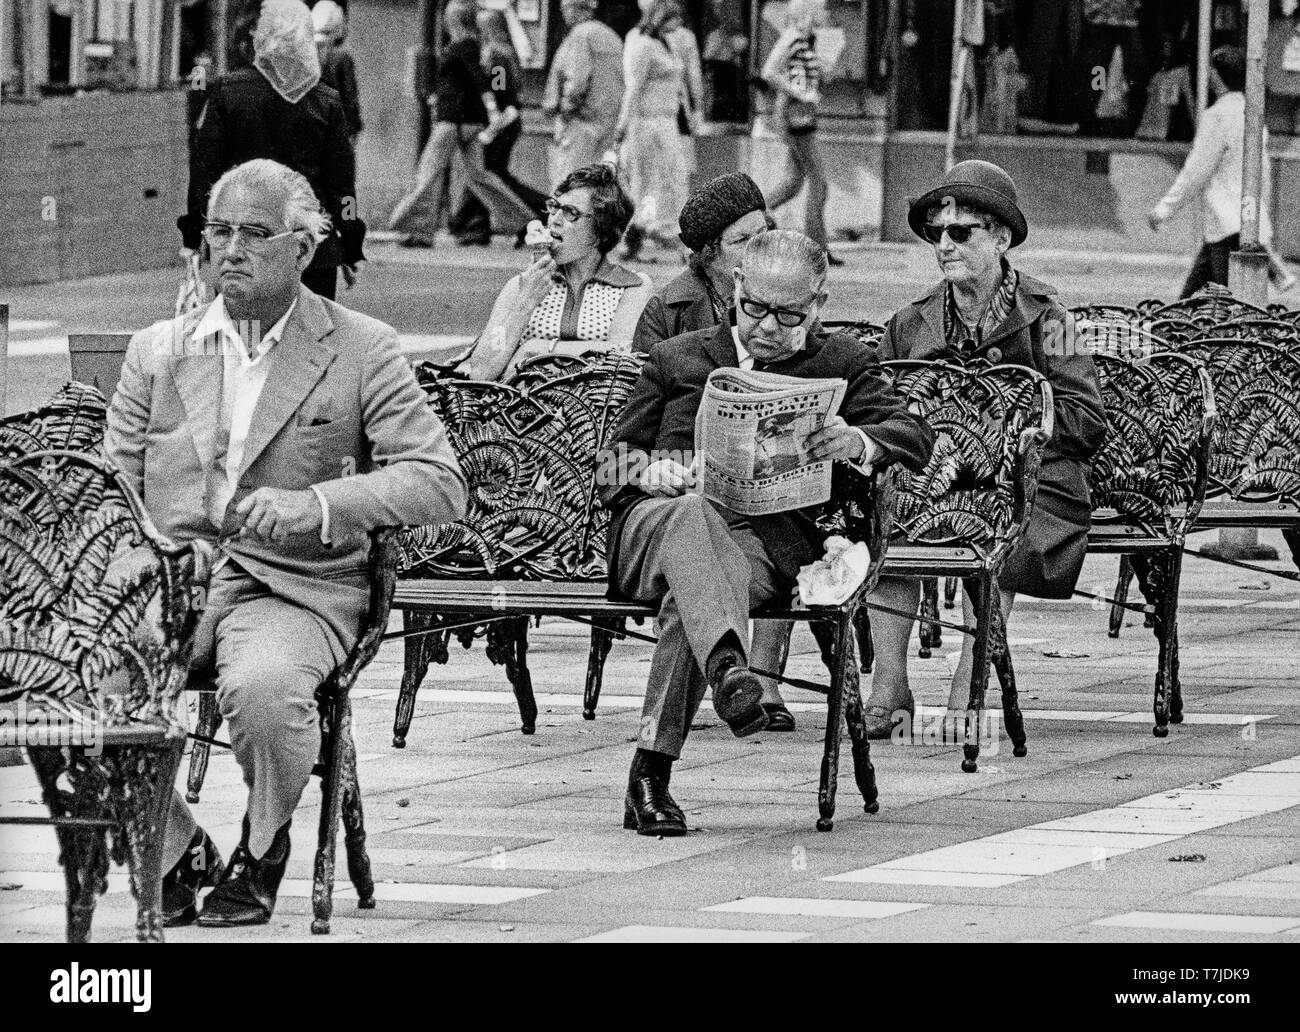 people on benches, stockholm, sweden, 70s - Stock Image